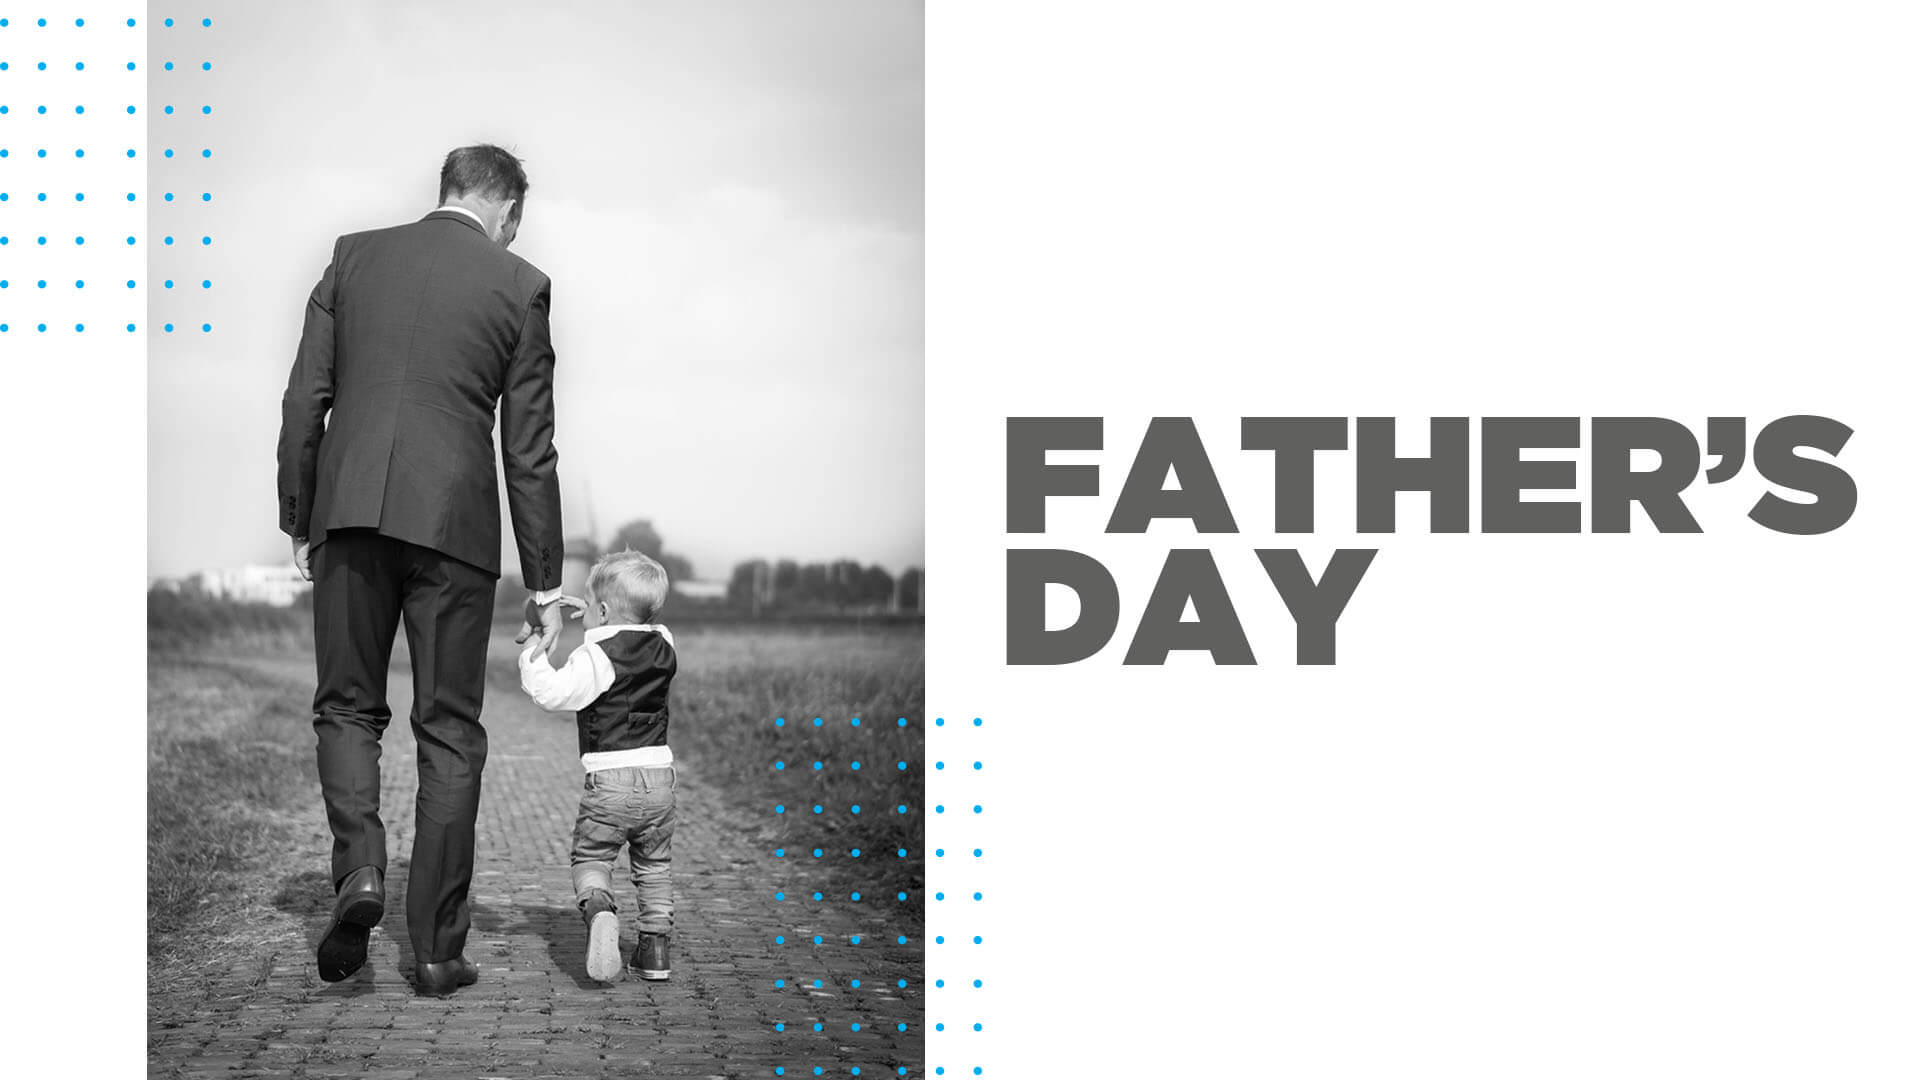 Series - Fathers Day 2019 - 1920x1080 Title copy 2.jpg